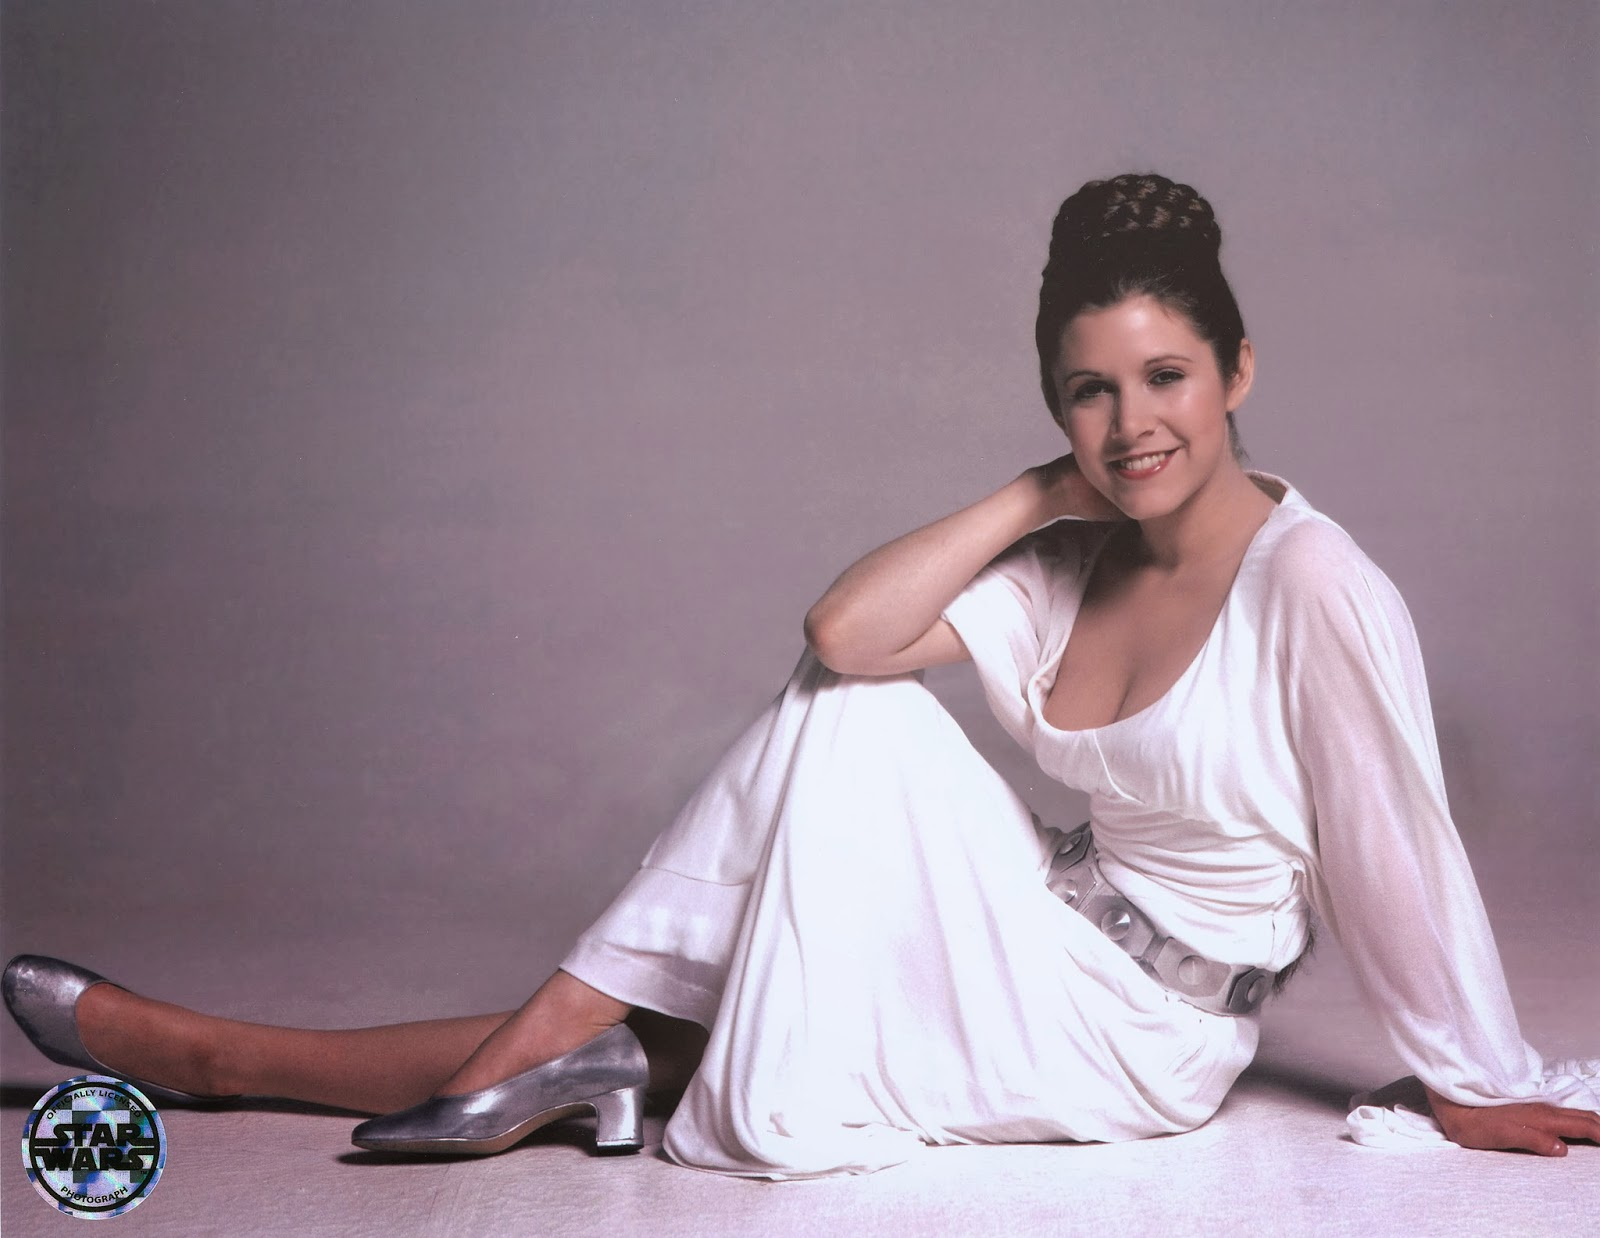 princess leia wearing a white dress